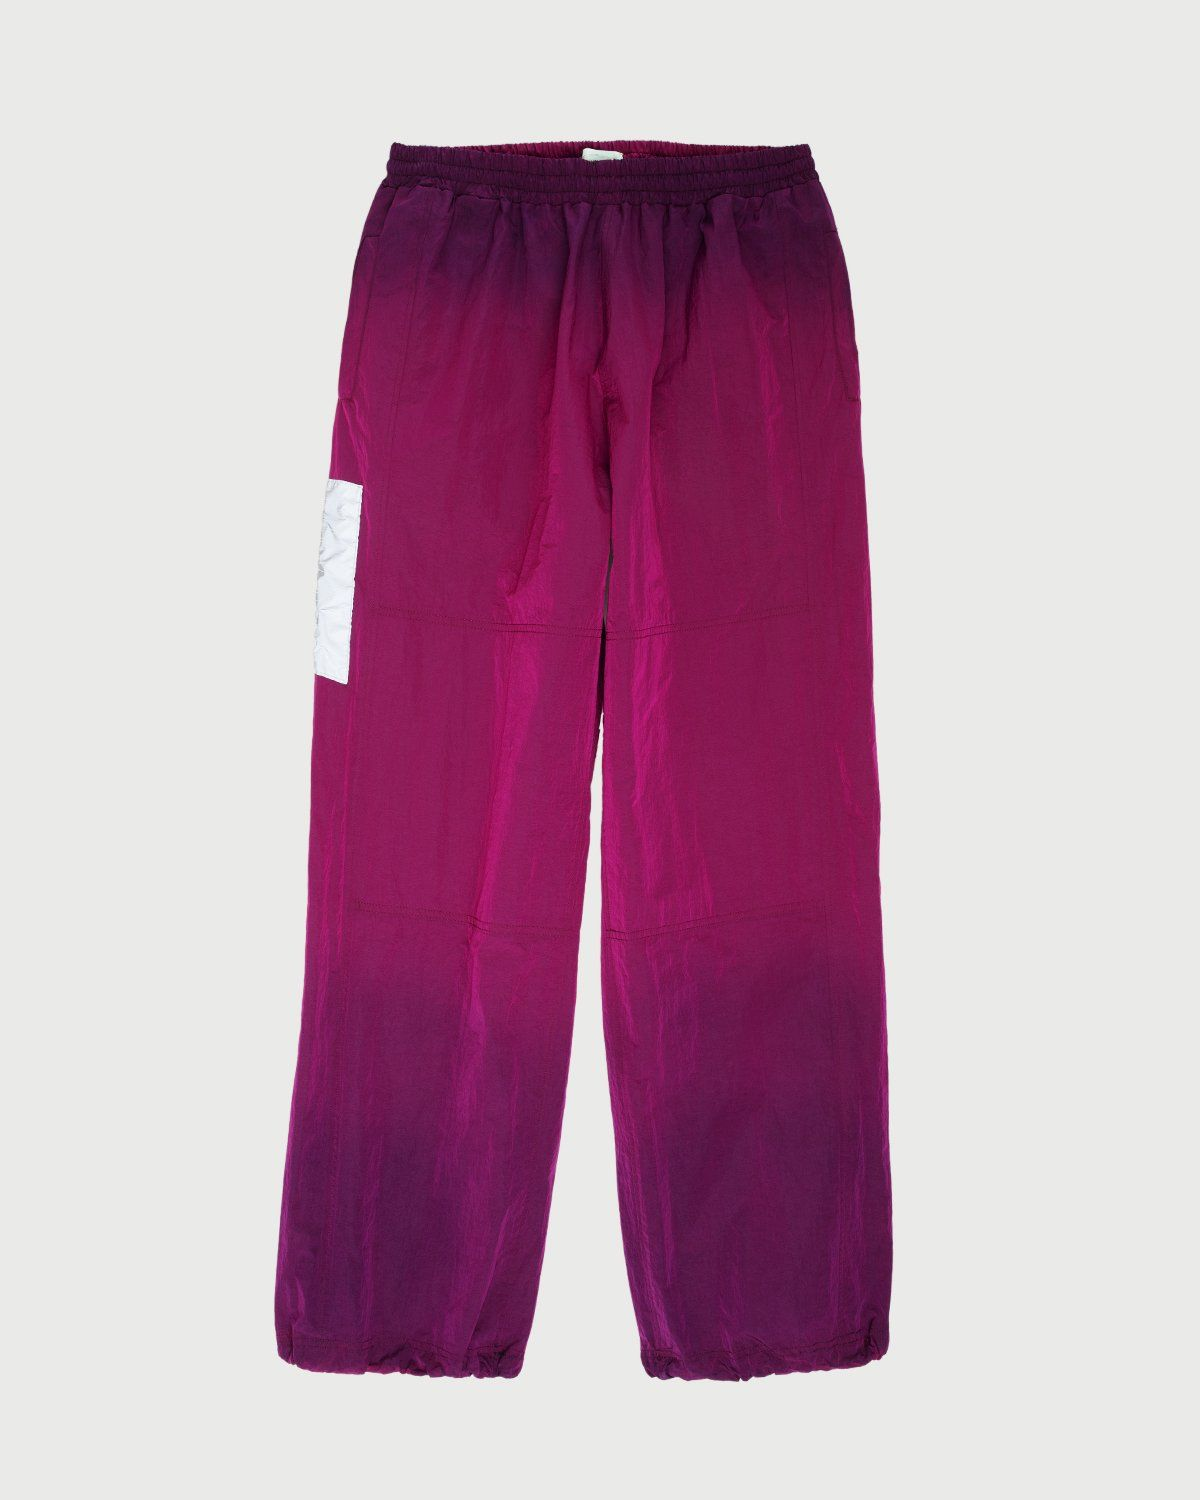 Aries — Ombre Dyed Track Pants Fuchsia - Image 1